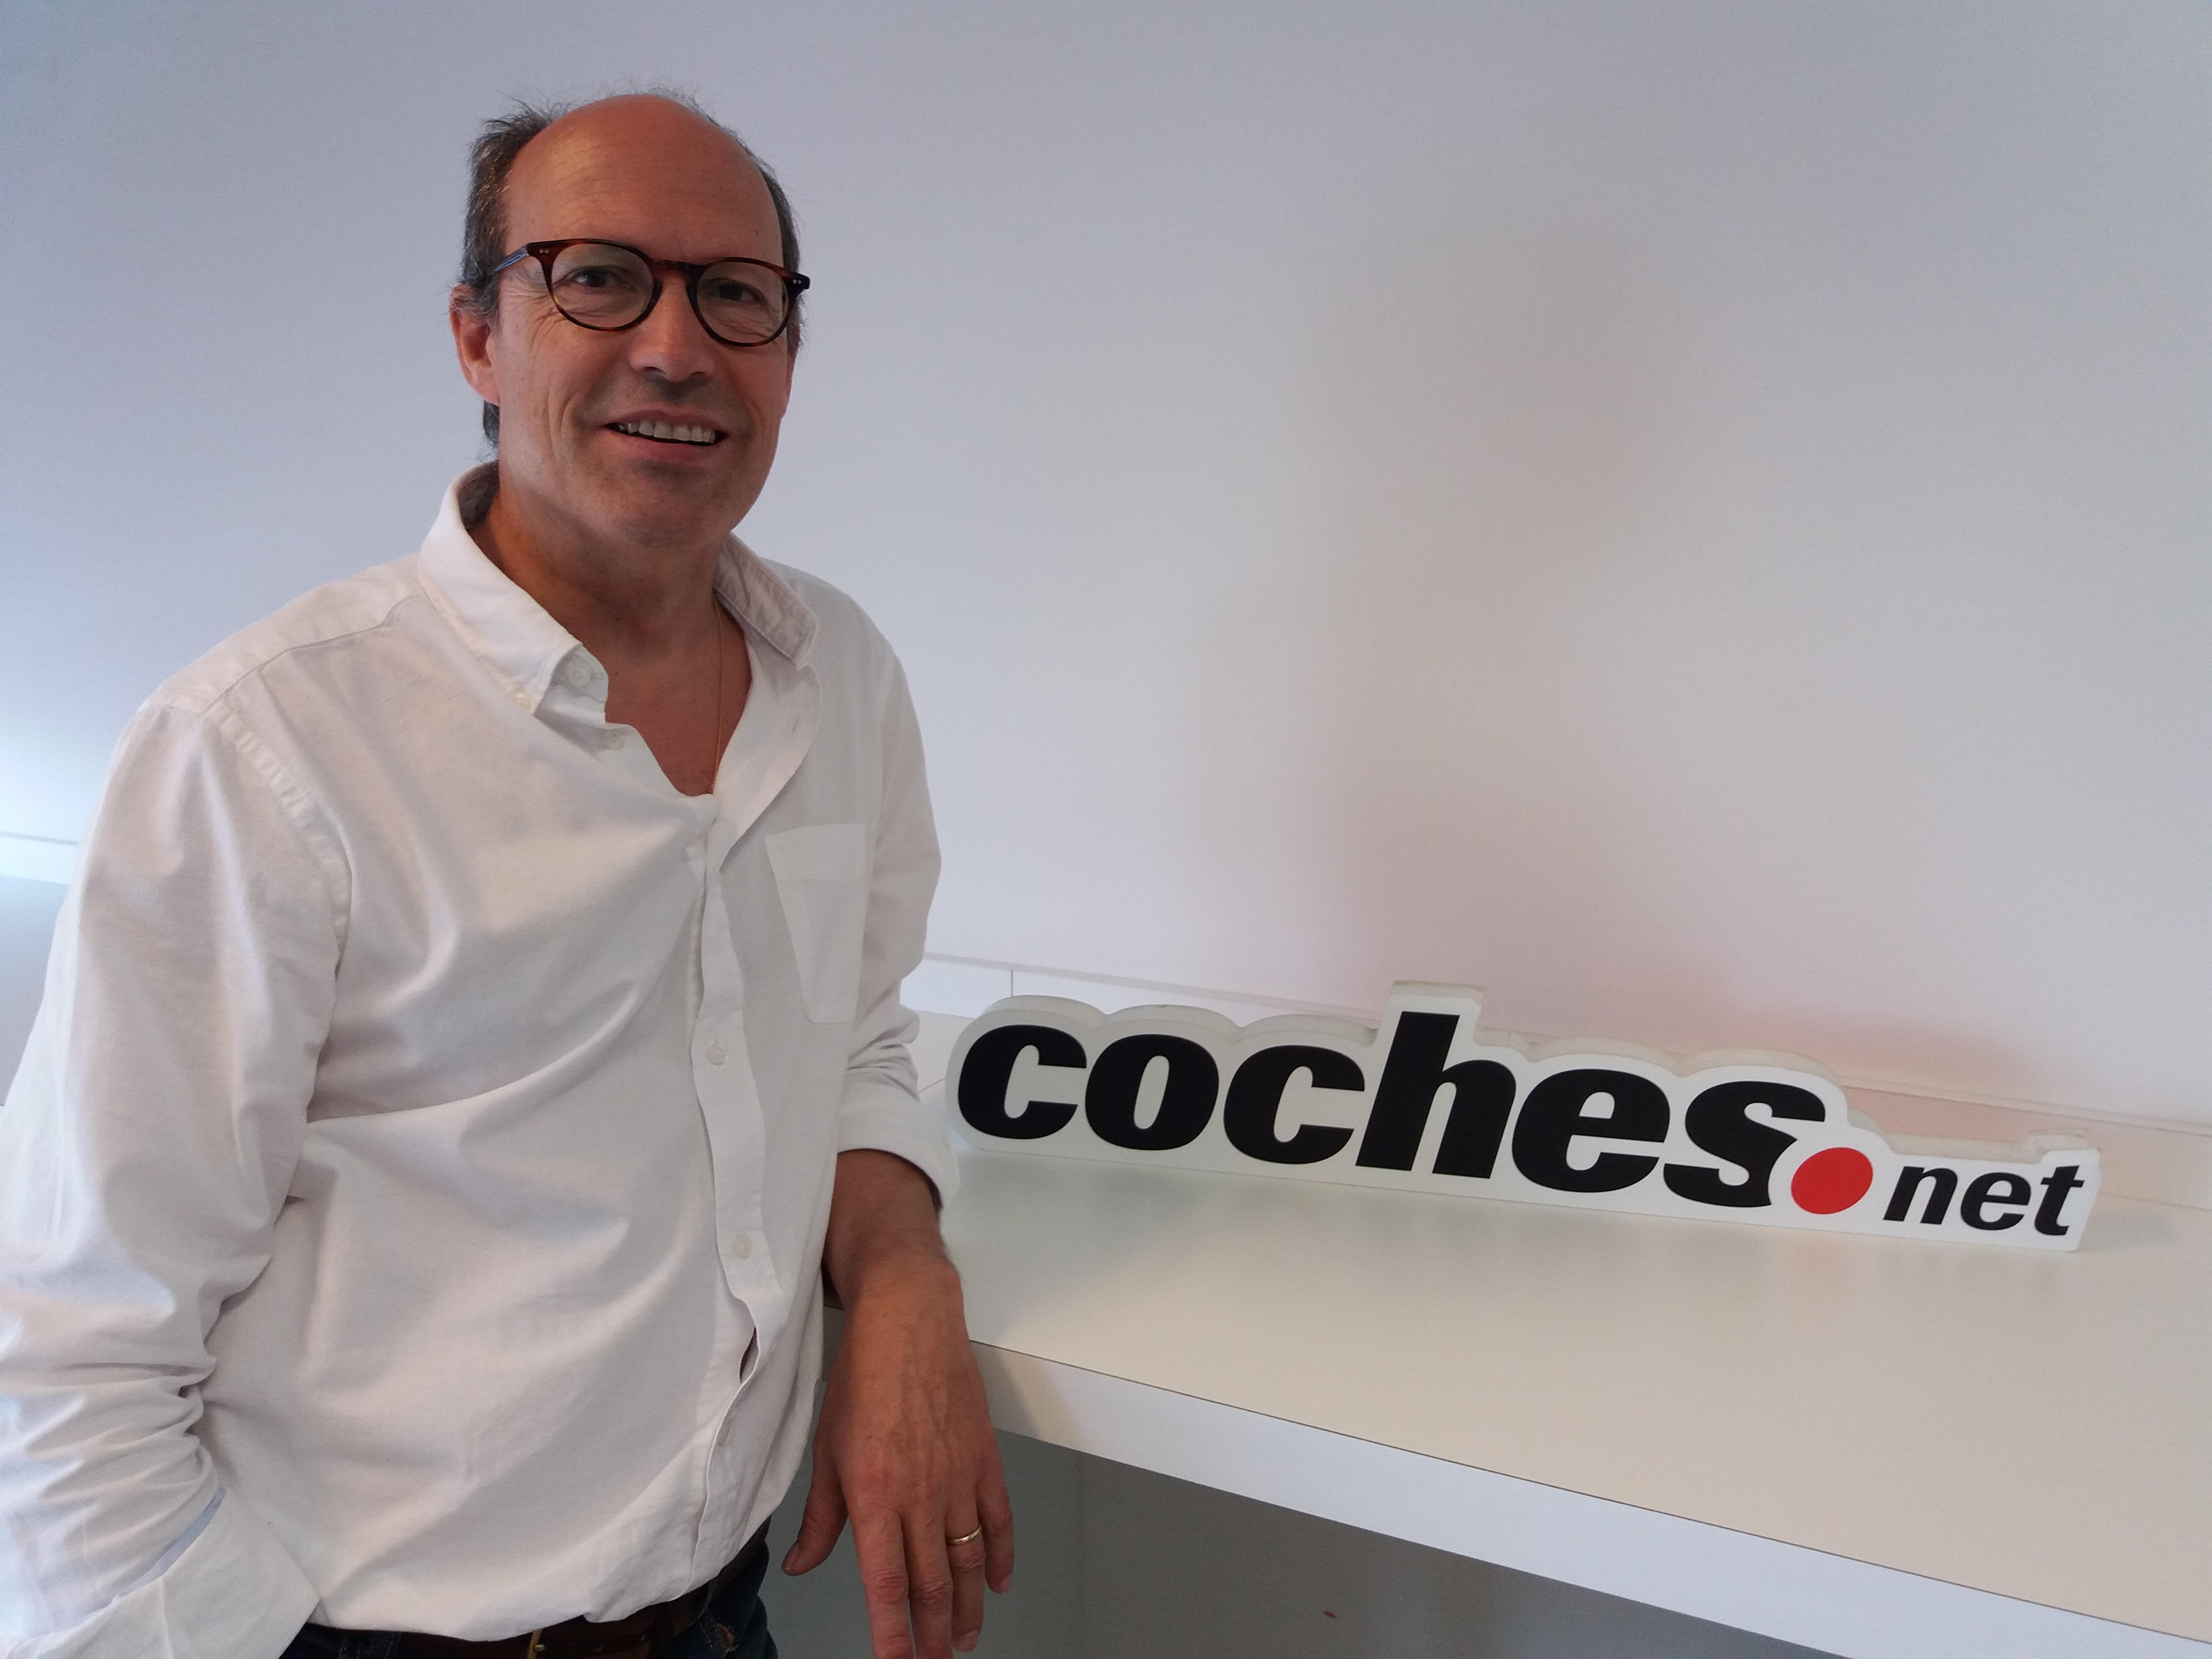 Marcel Blanes, responsable de marketing institucional de coches.net